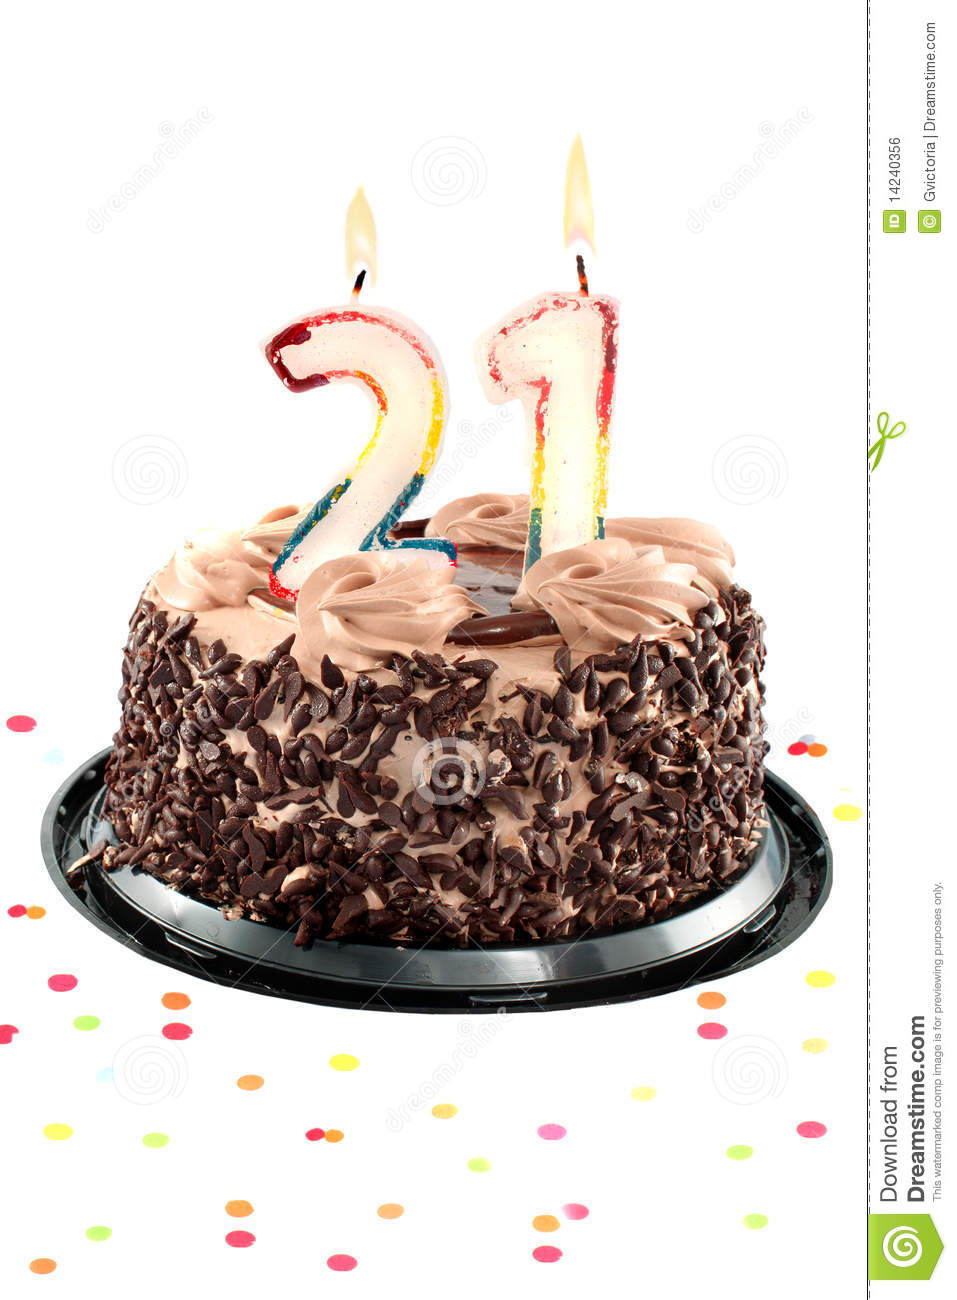 Twenty First Birthday Or Anniversary Royalty Free Stock Image ...